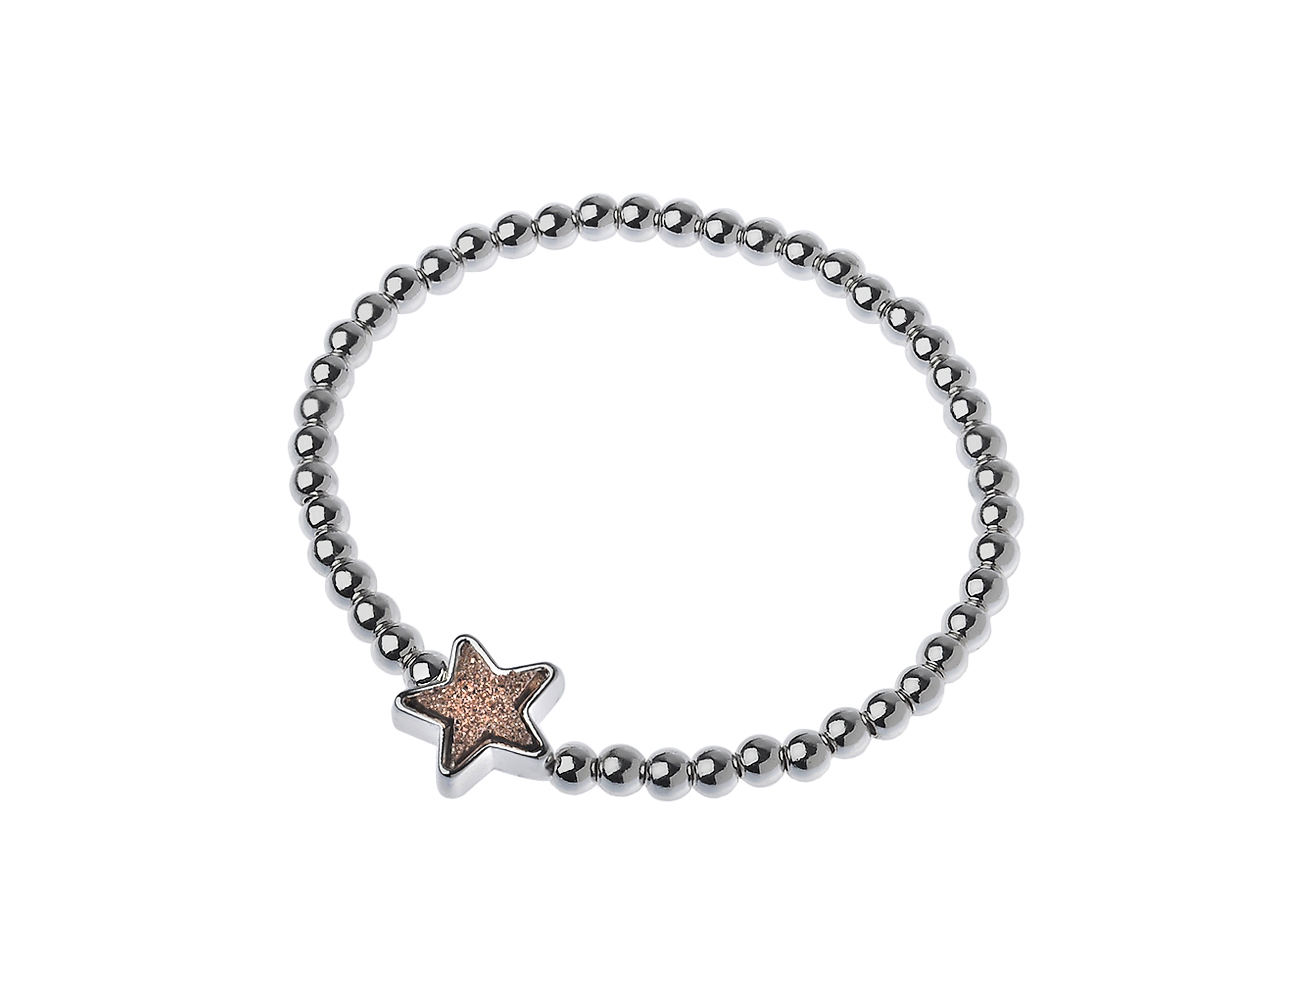 Silver Brass Bead Stretch Druzy Star Bracelet